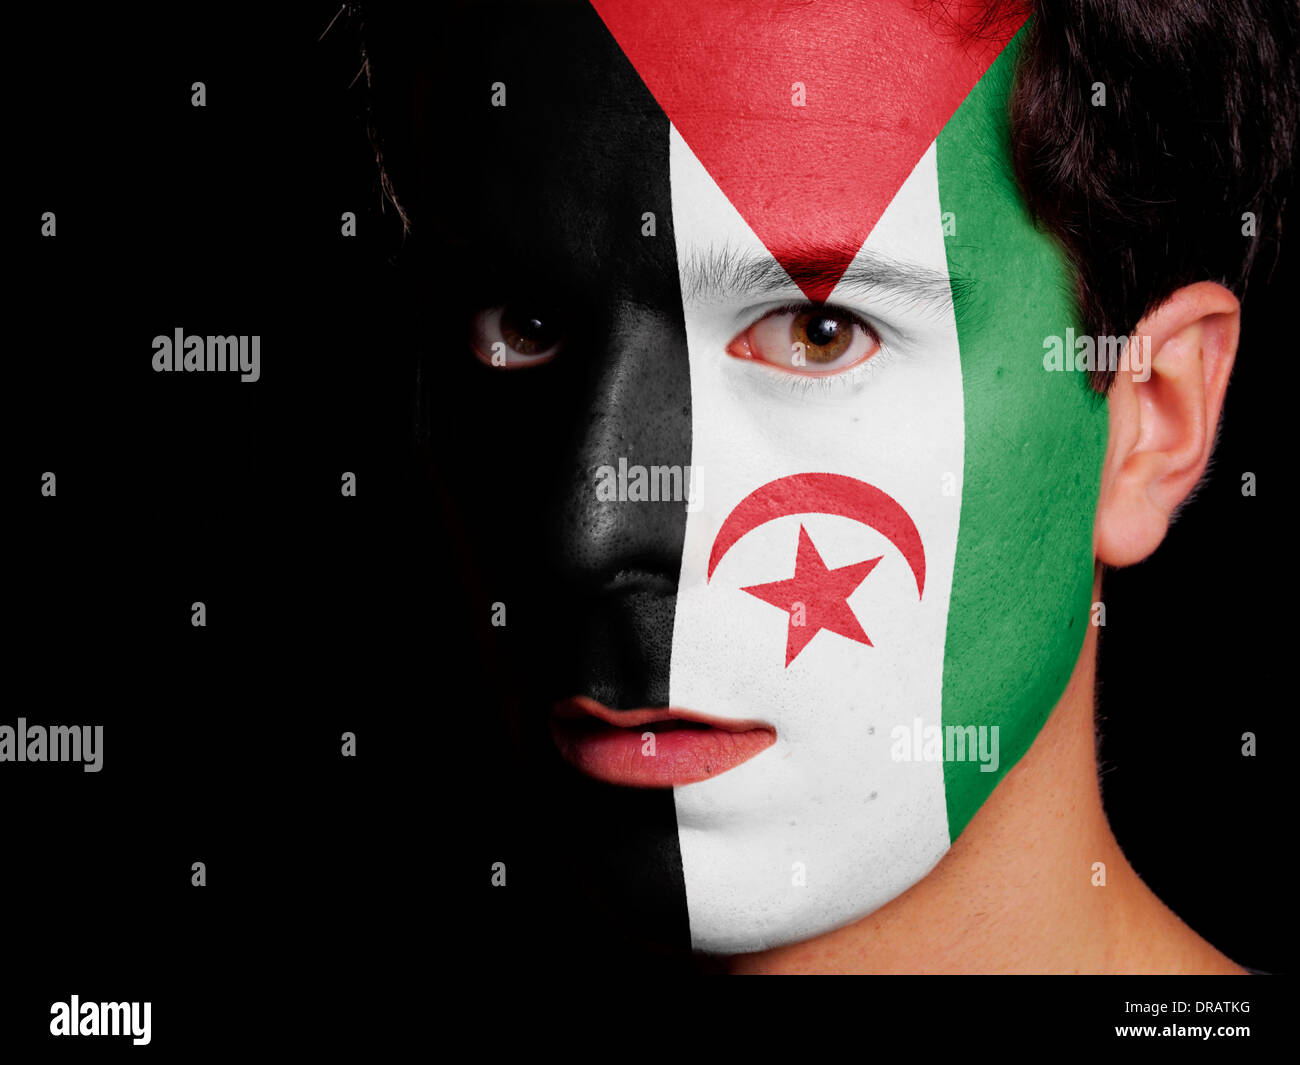 Flag of Sahrawi Arab Democratic Republic Painted on a Face of a Young Man - Stock Image